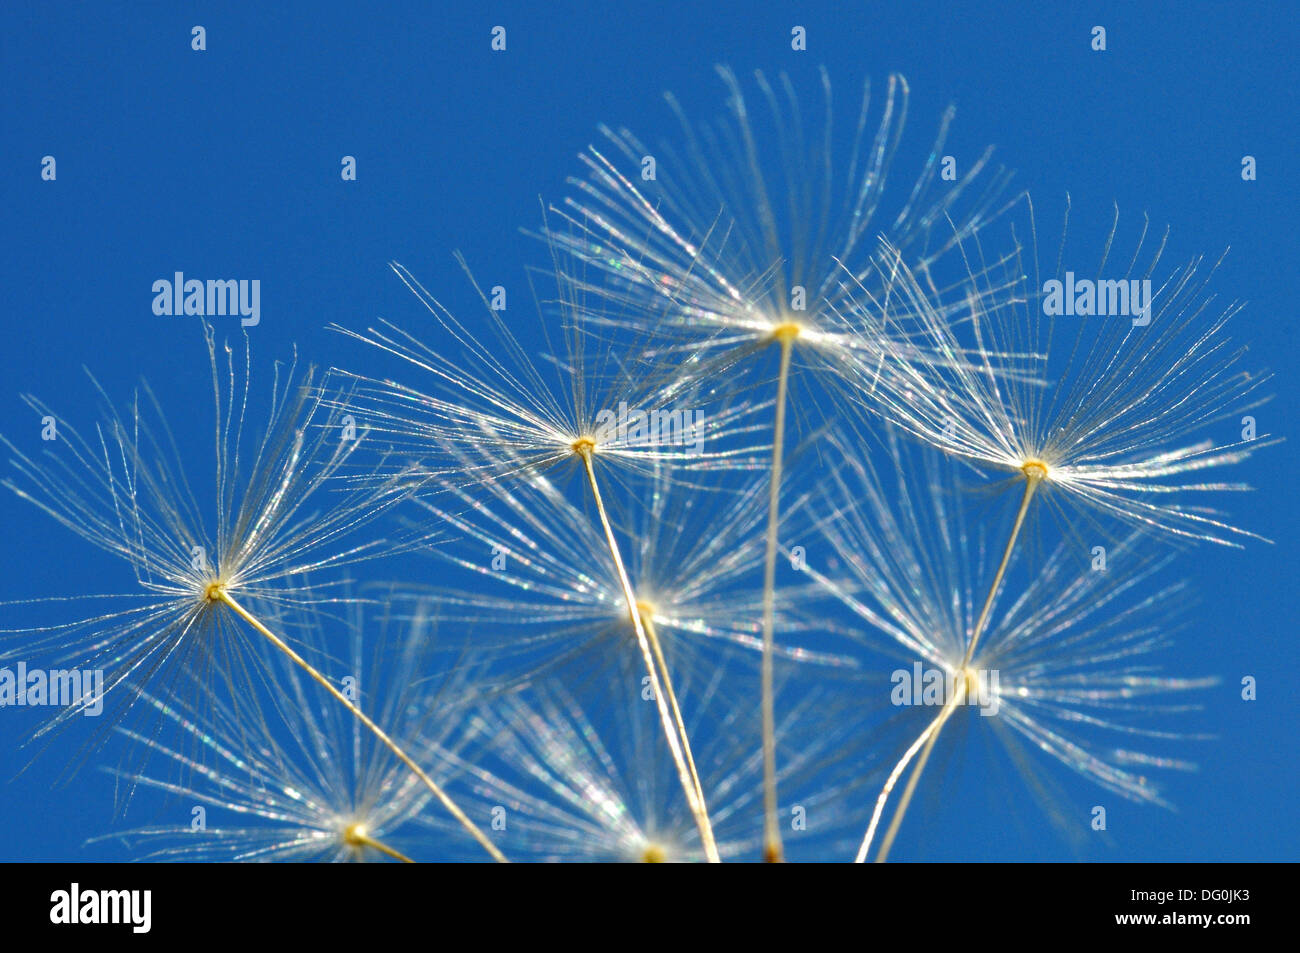 Detailed View of Dandelion Seed With Blue Sky - Stock Image